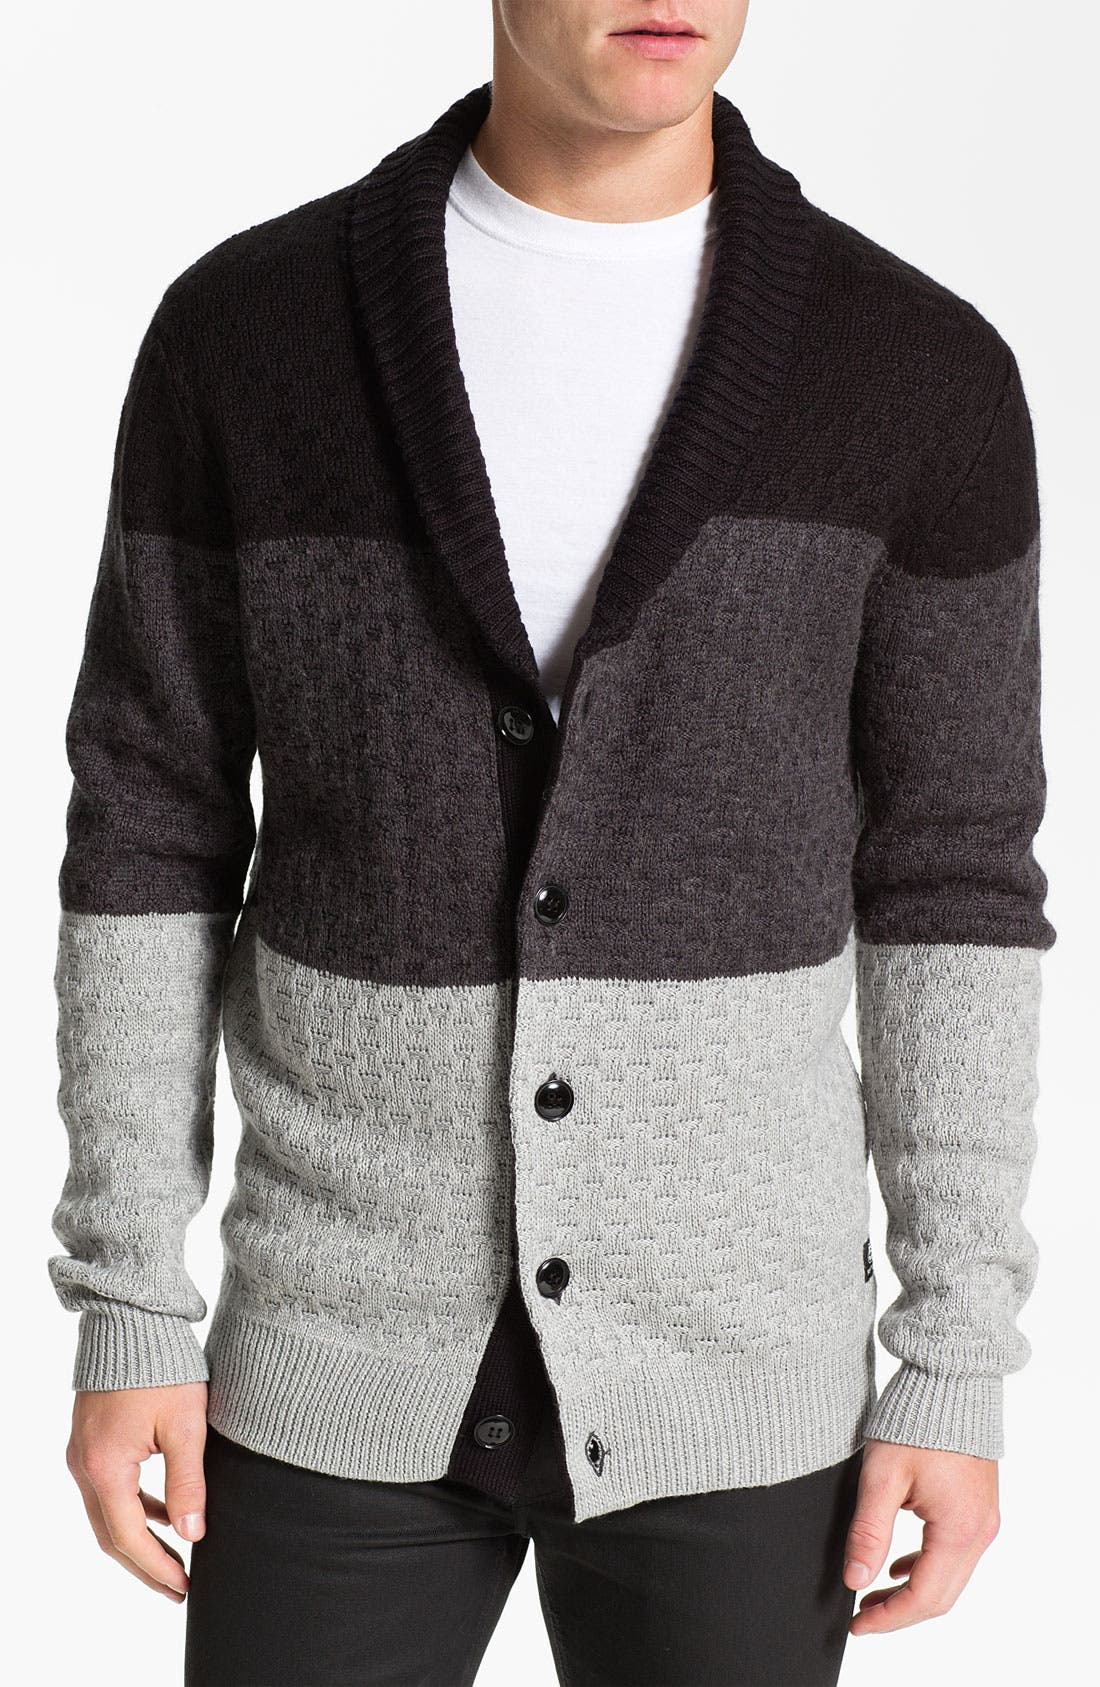 Main Image - 55DSL 'Kanfyl' Shawl Collar Cardigan